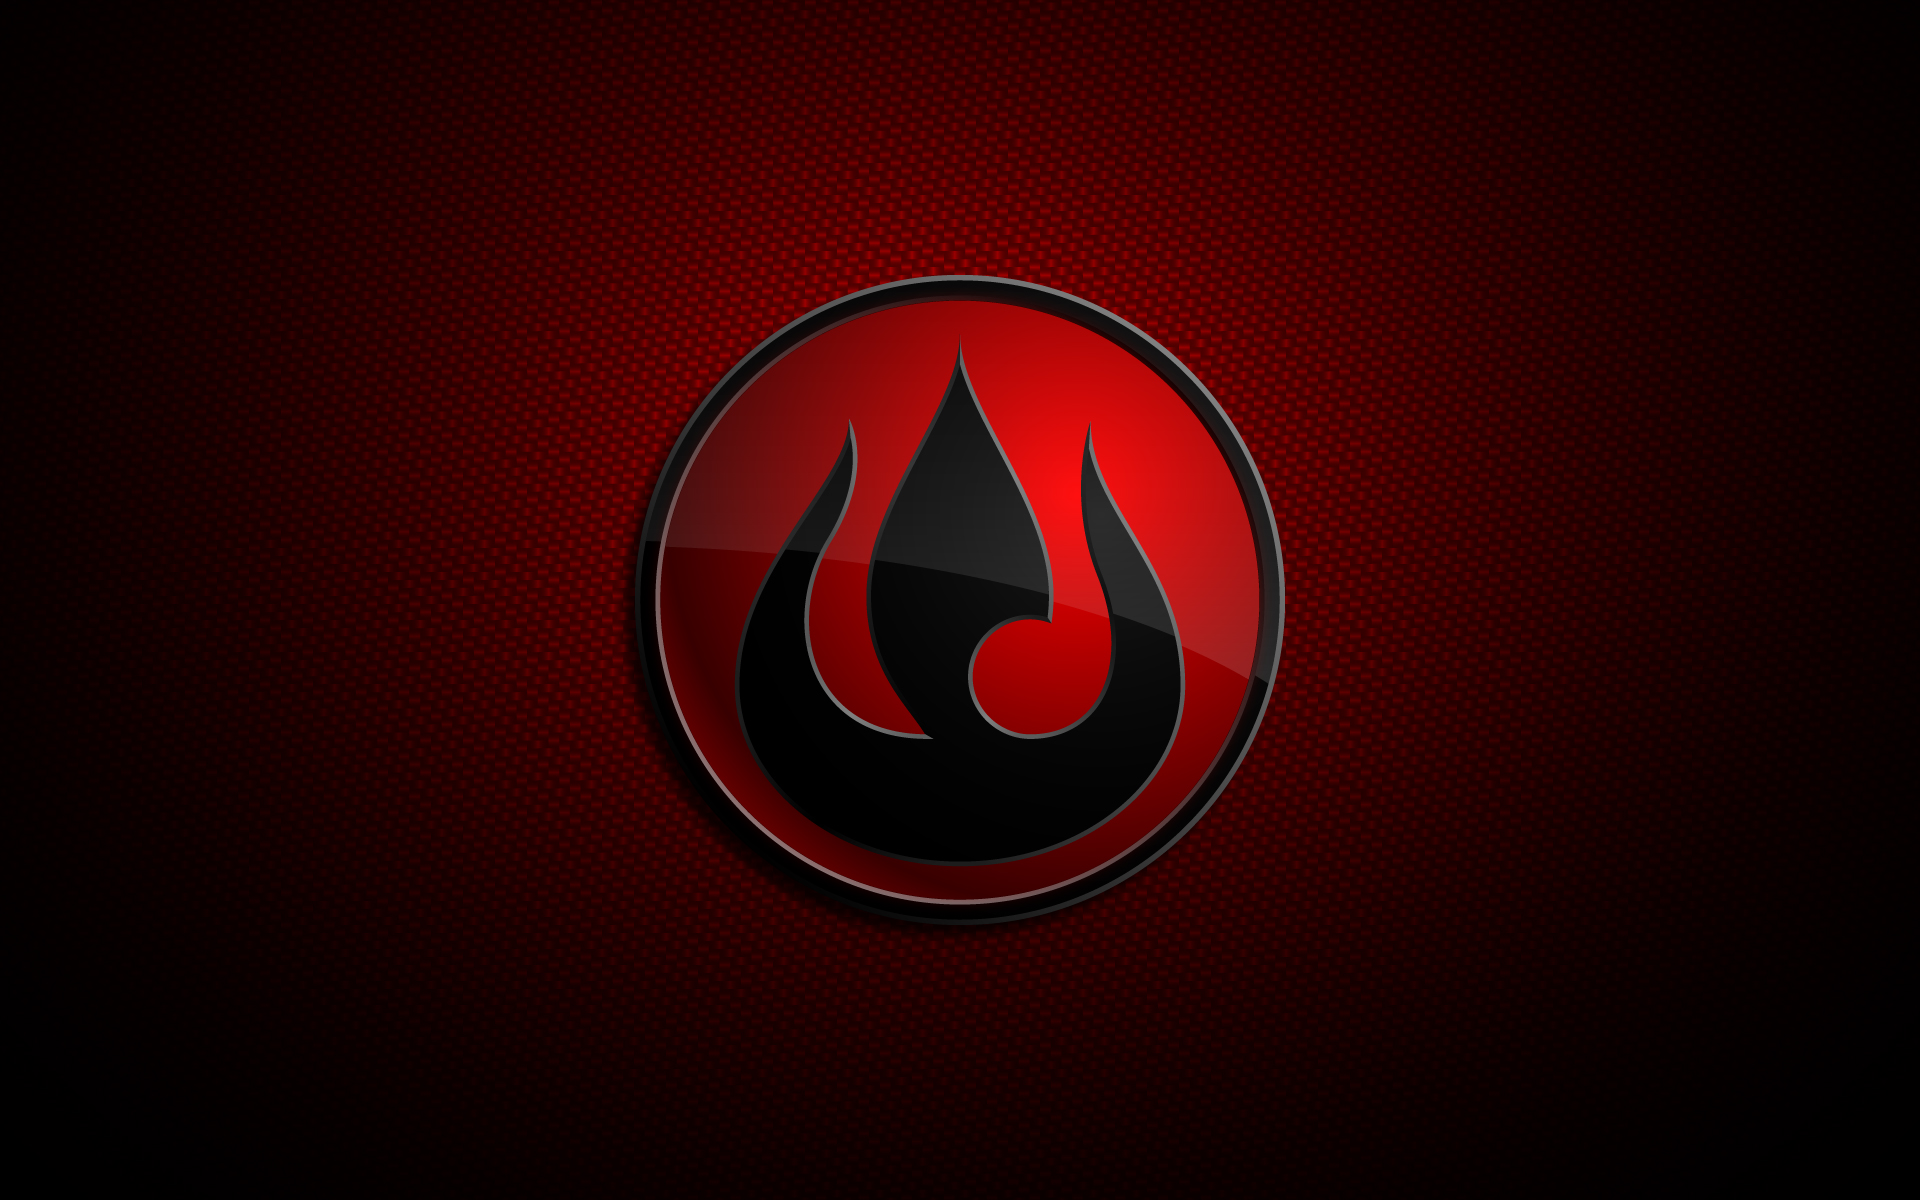 Avatar The Last Airbender Fire Nation Free Wallpaper